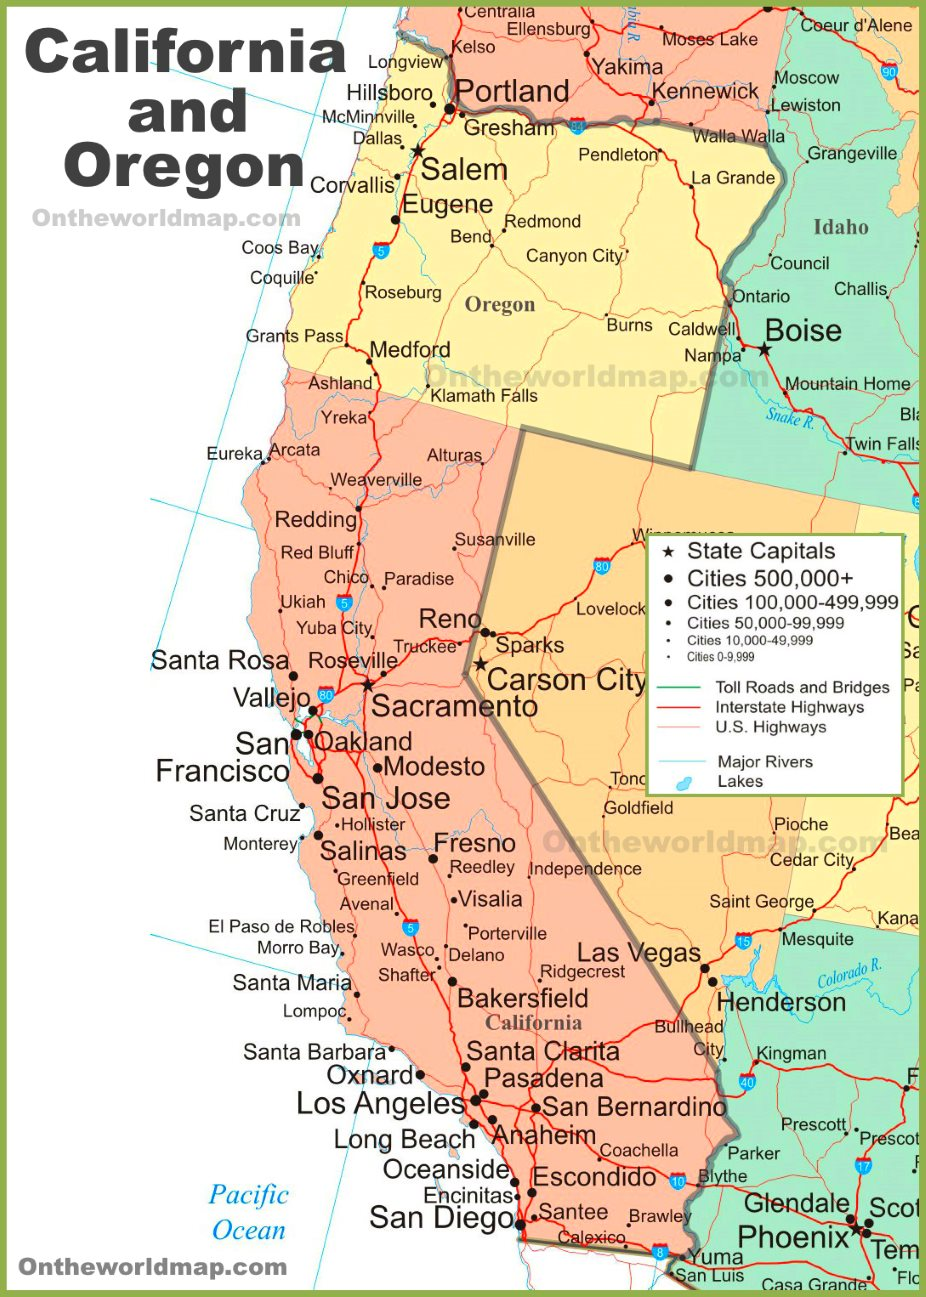 Map Of Southern Oregon And Northern California : southern, oregon, northern, california, California, Oregon